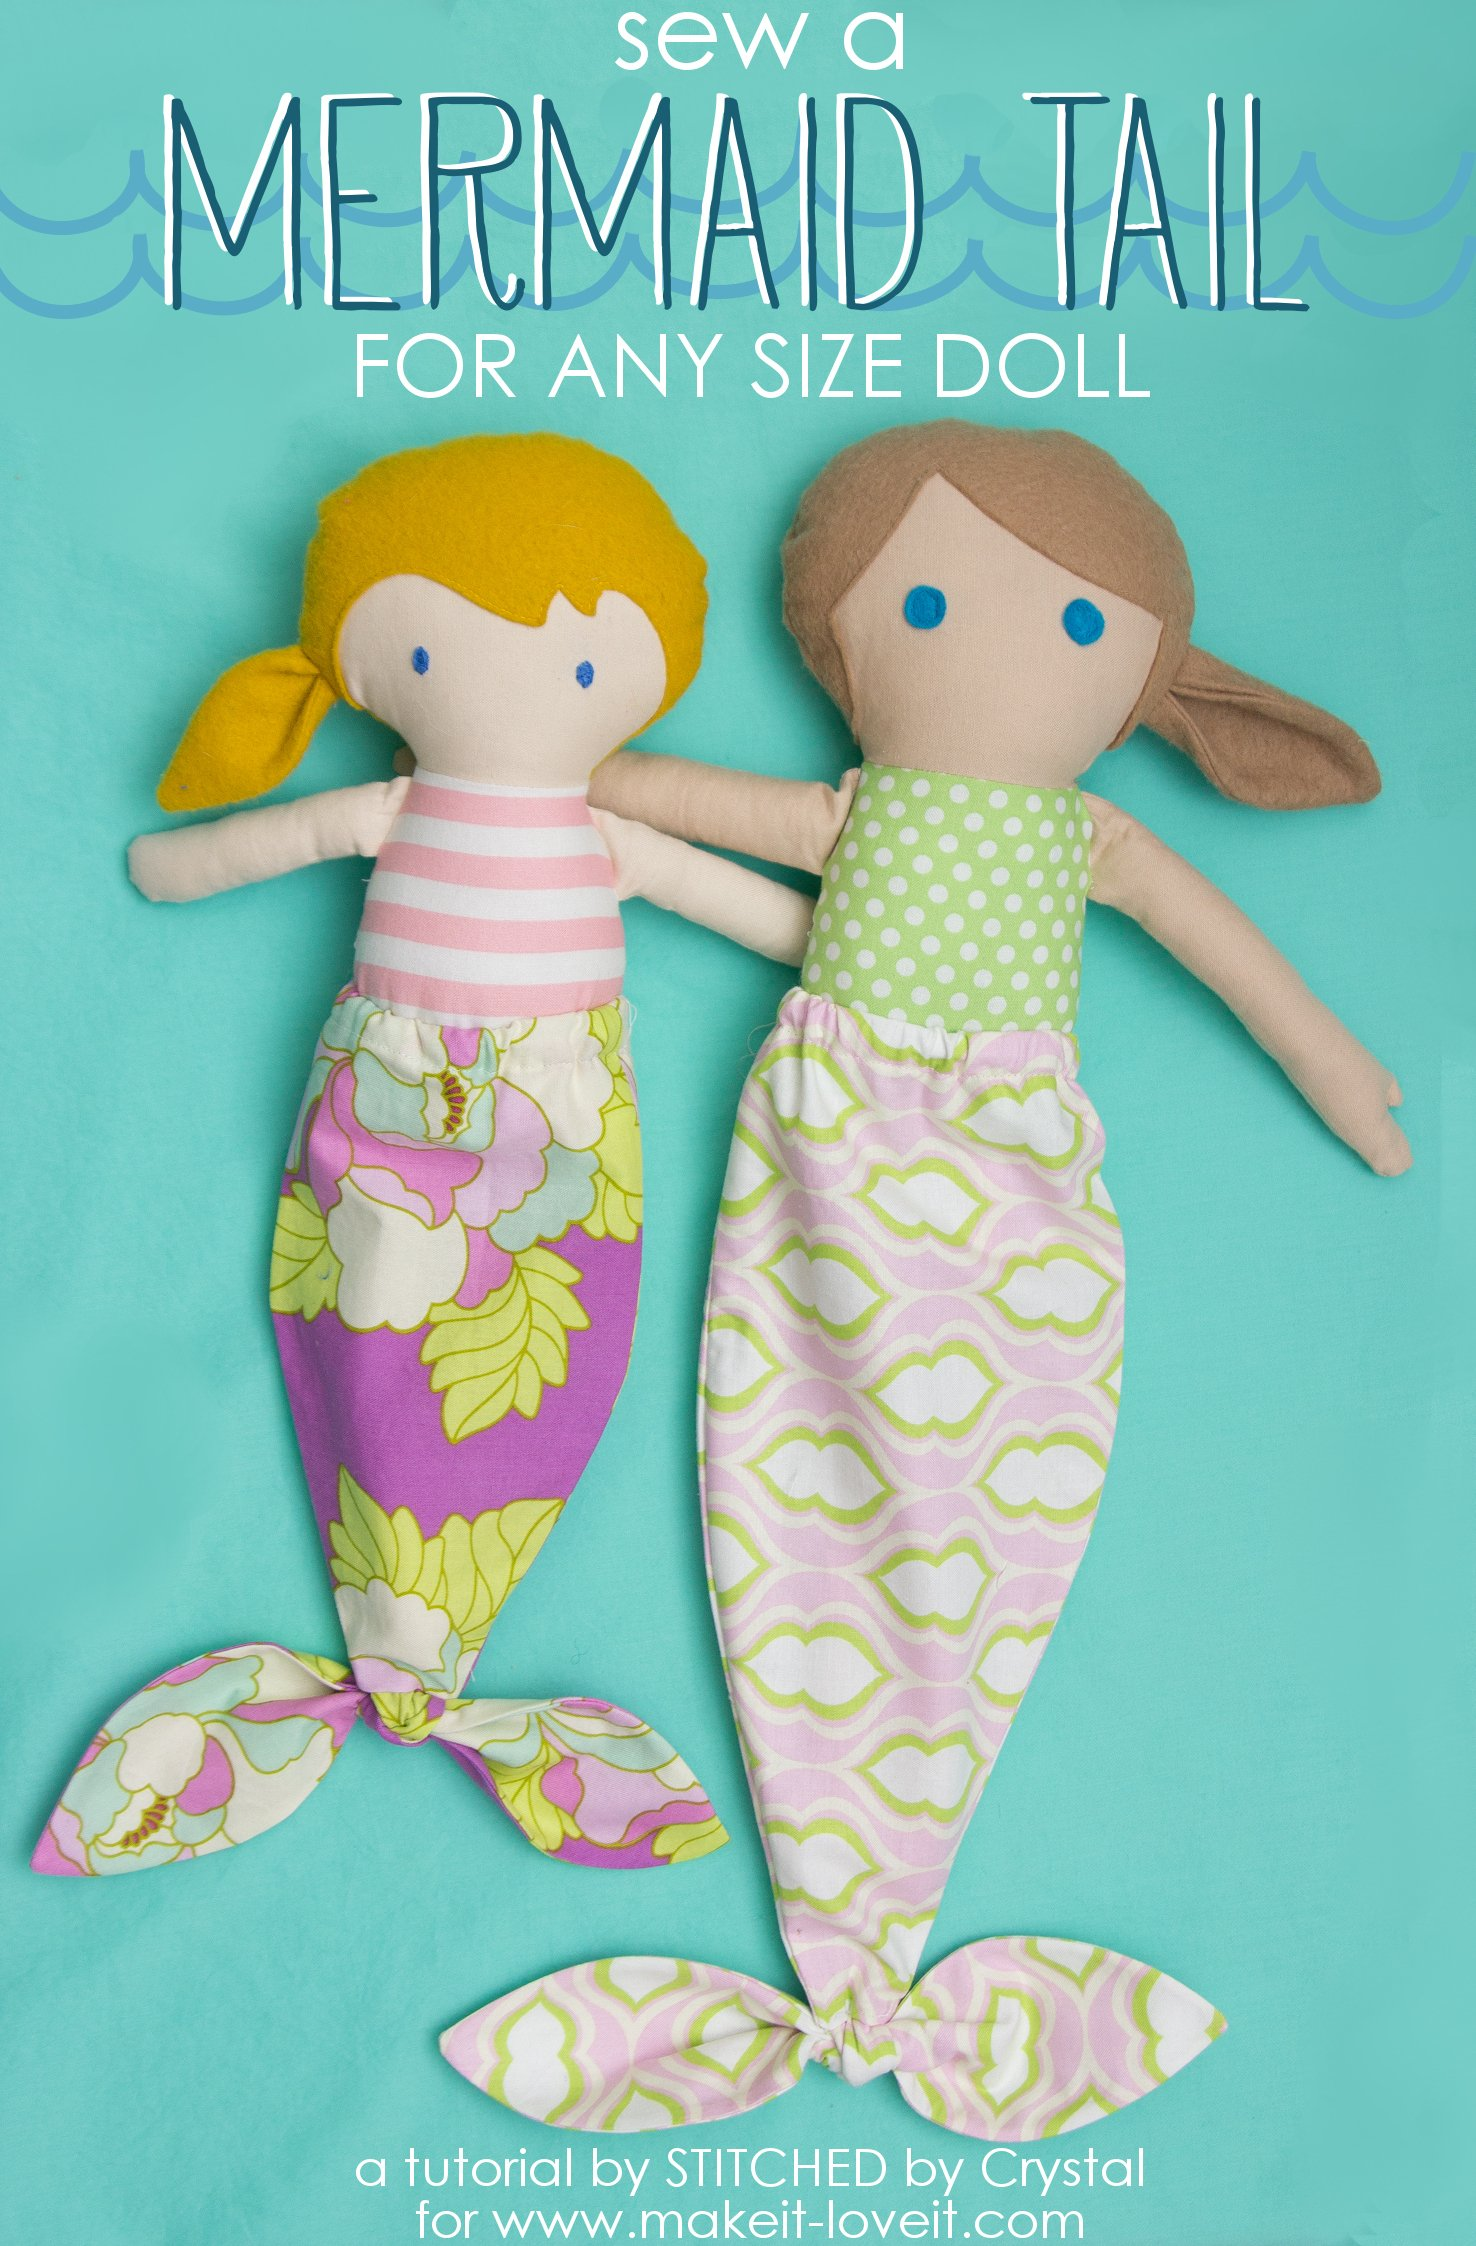 Sew a mermaid tail for any size doll!